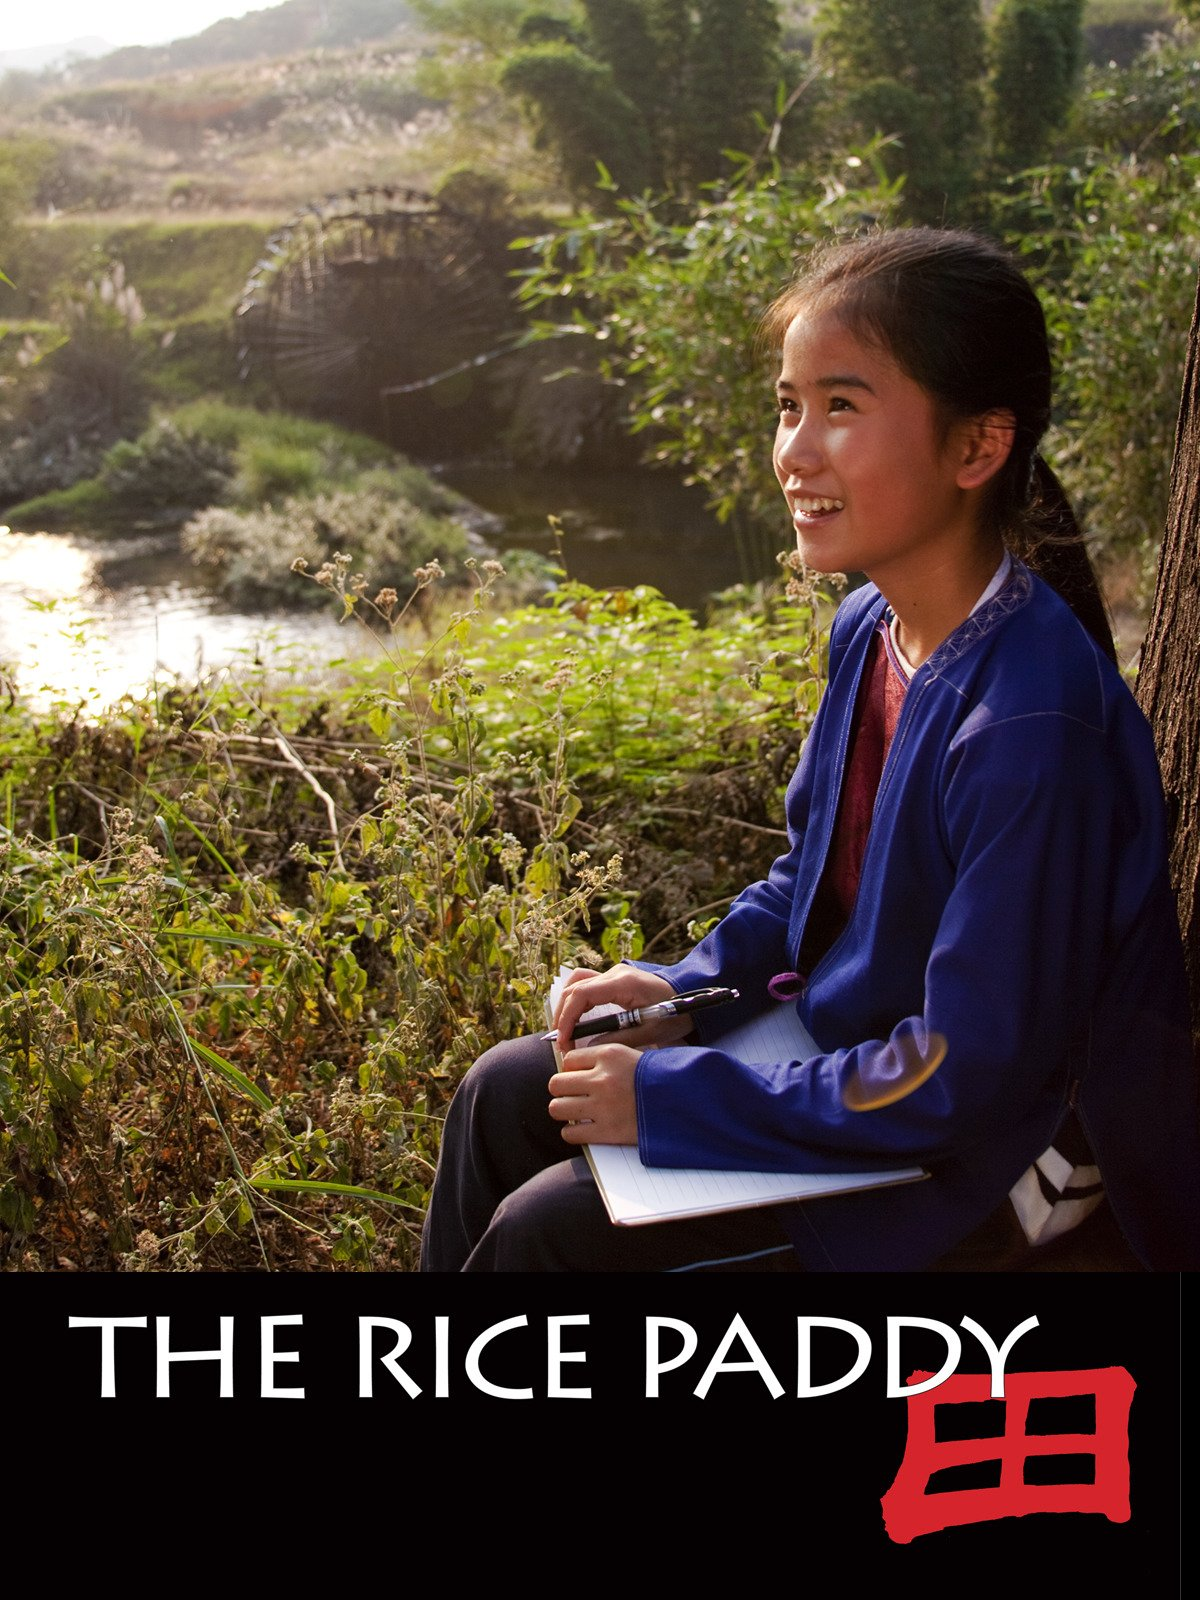 The Rice Paddy